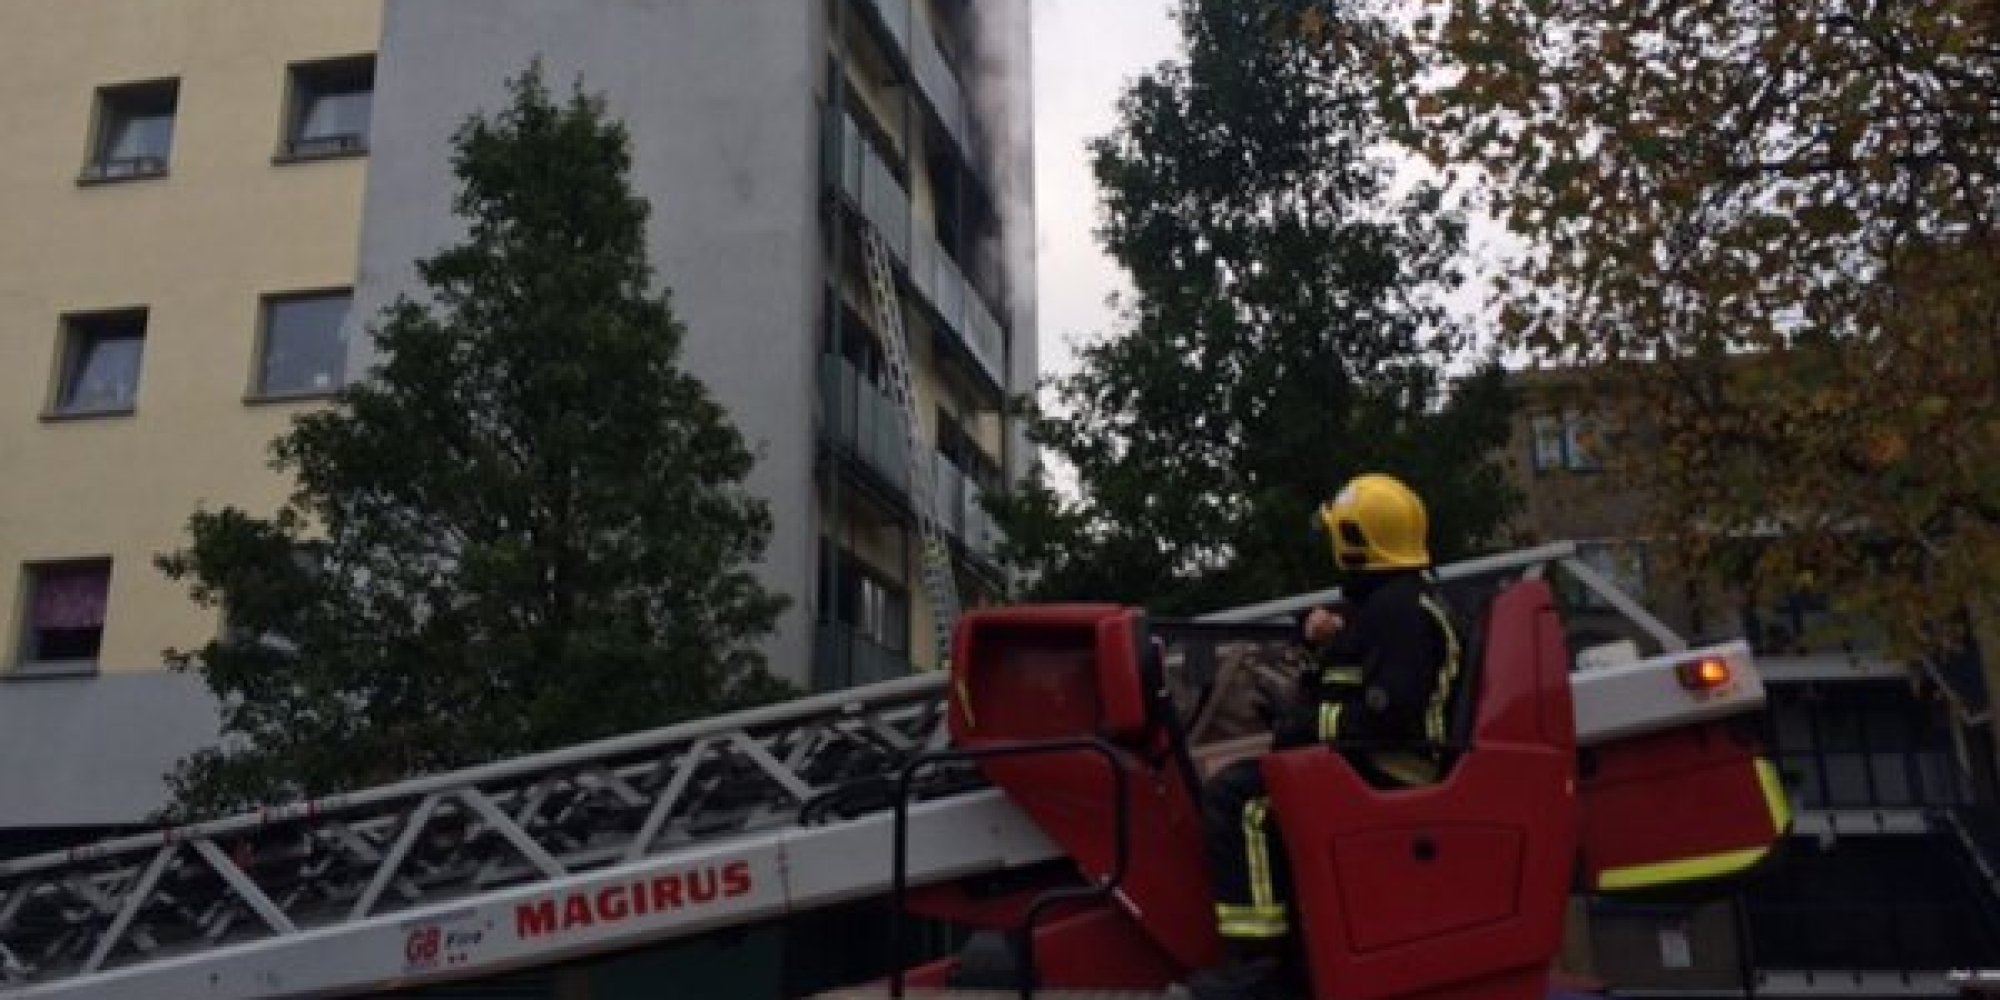 London Fire Brigade Rescues 50 After Adair Tower